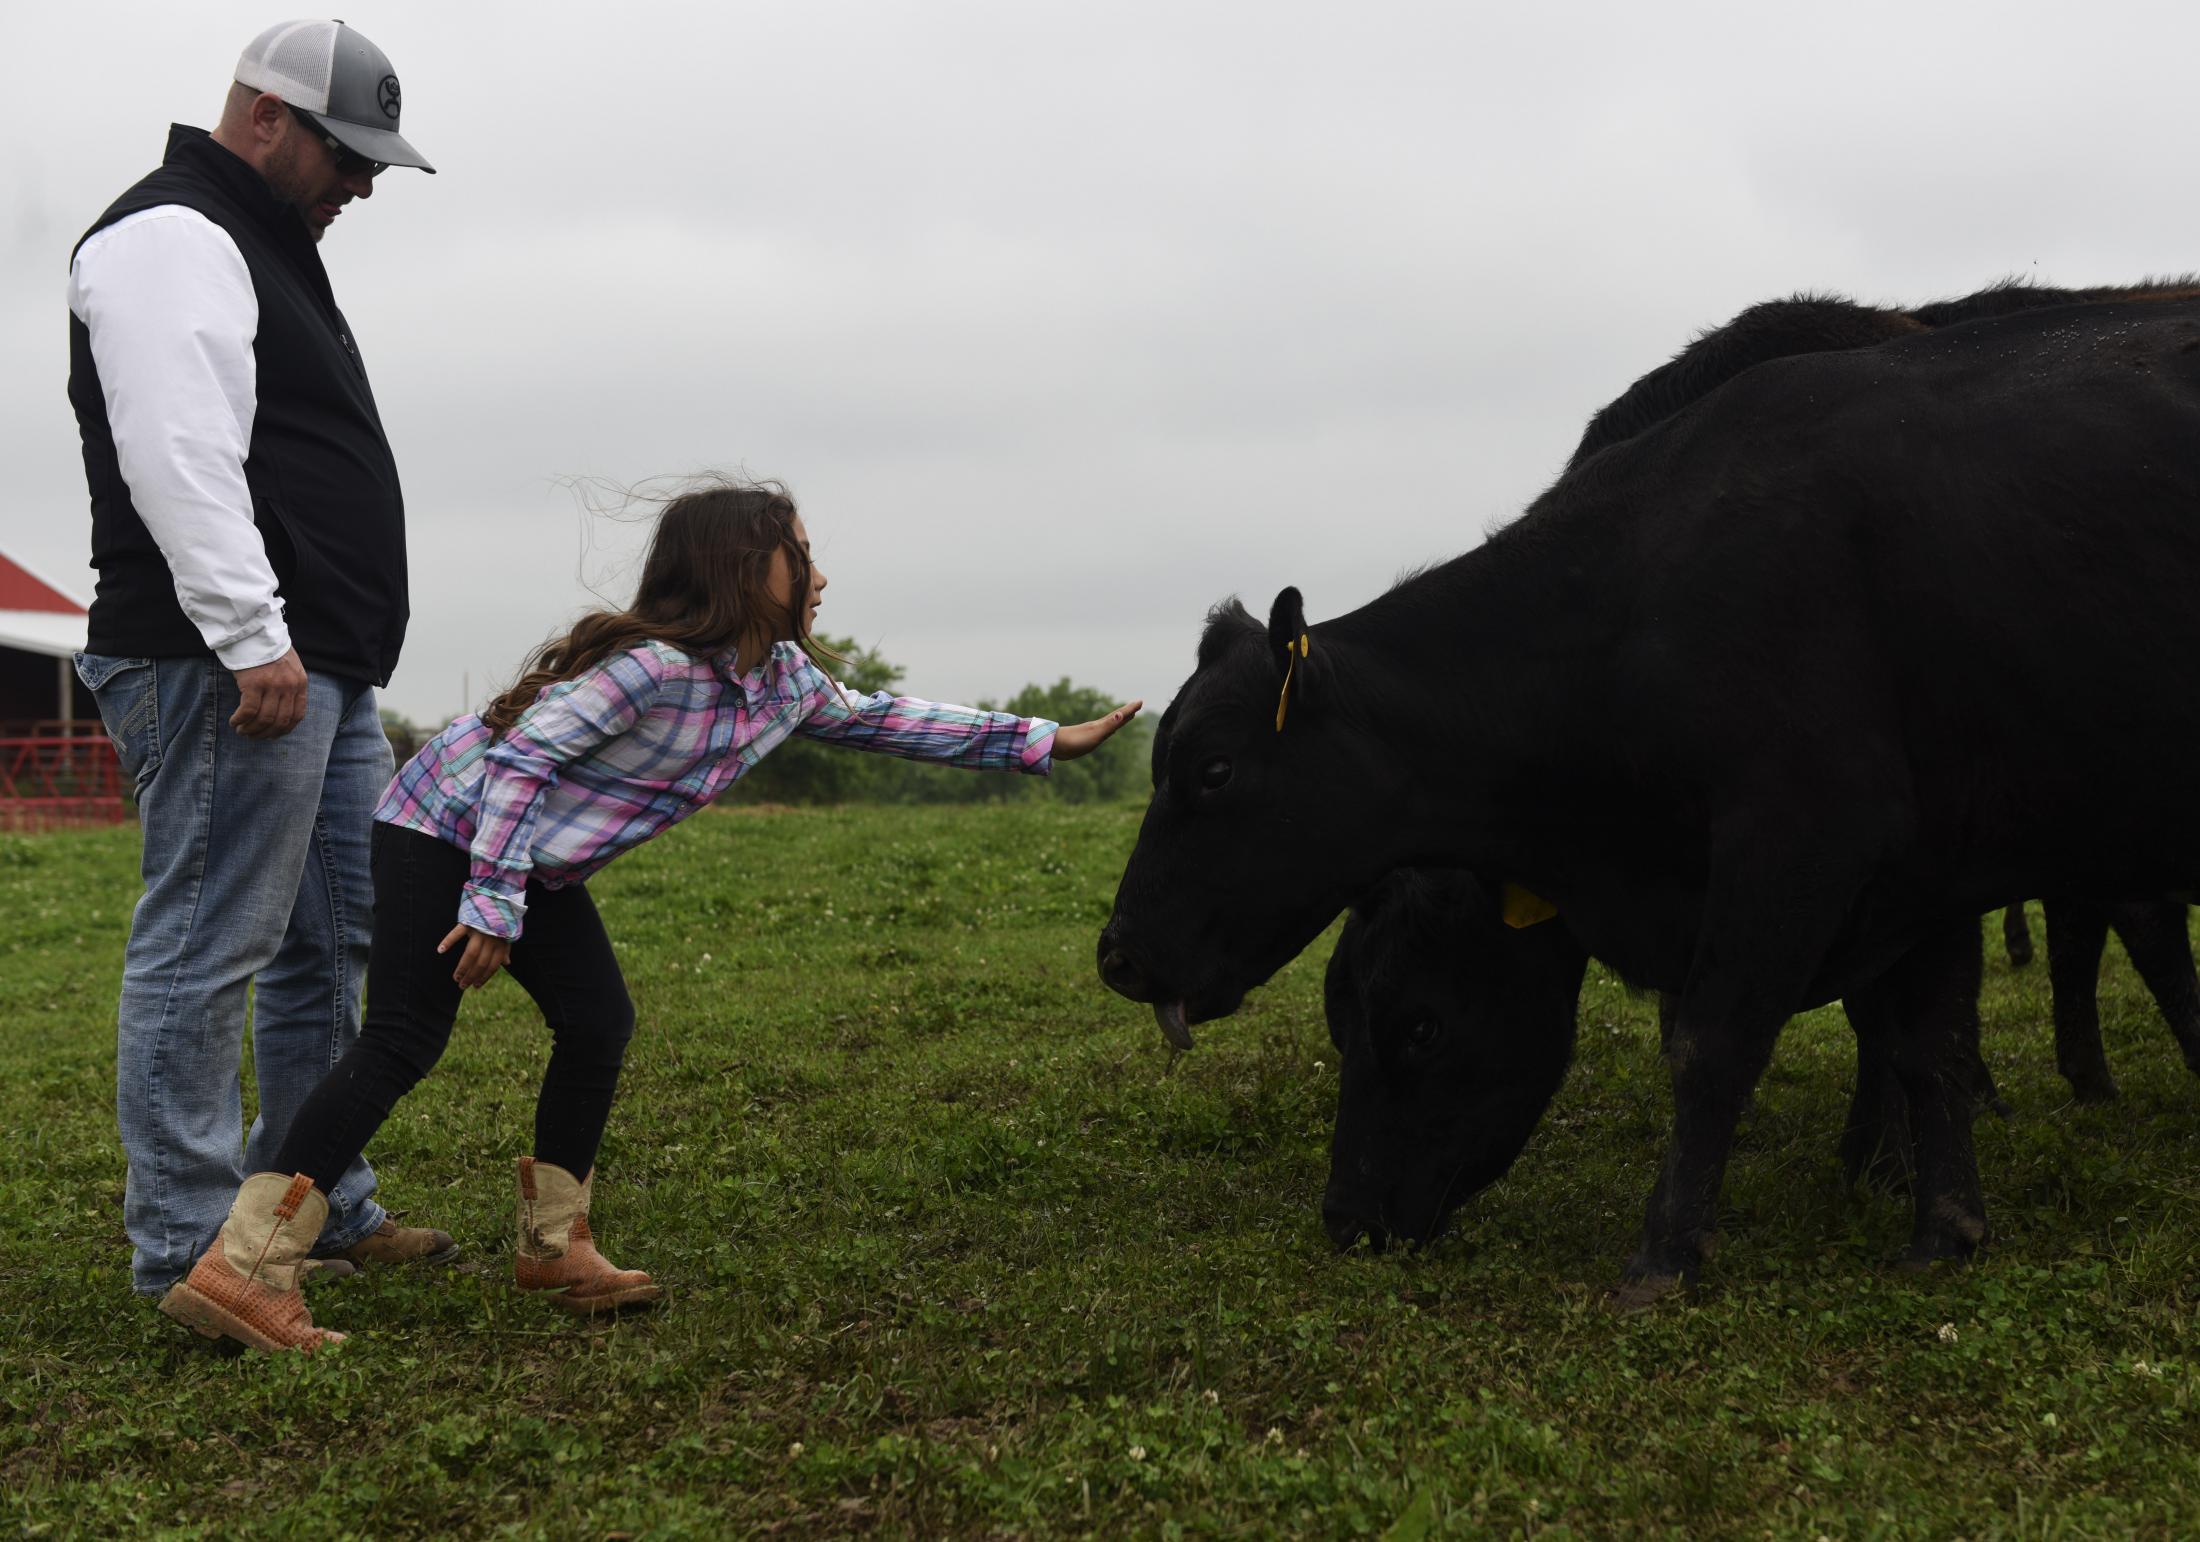 Fred Williams visits the cattle with his daughter Isabelle, 7, on Tuesday, May 19, 2020, on their farm in Clarksburg, Missouri. Williams said he grew up working on his grandparents farm and wanted to give his children the same opportunity to work on the land.